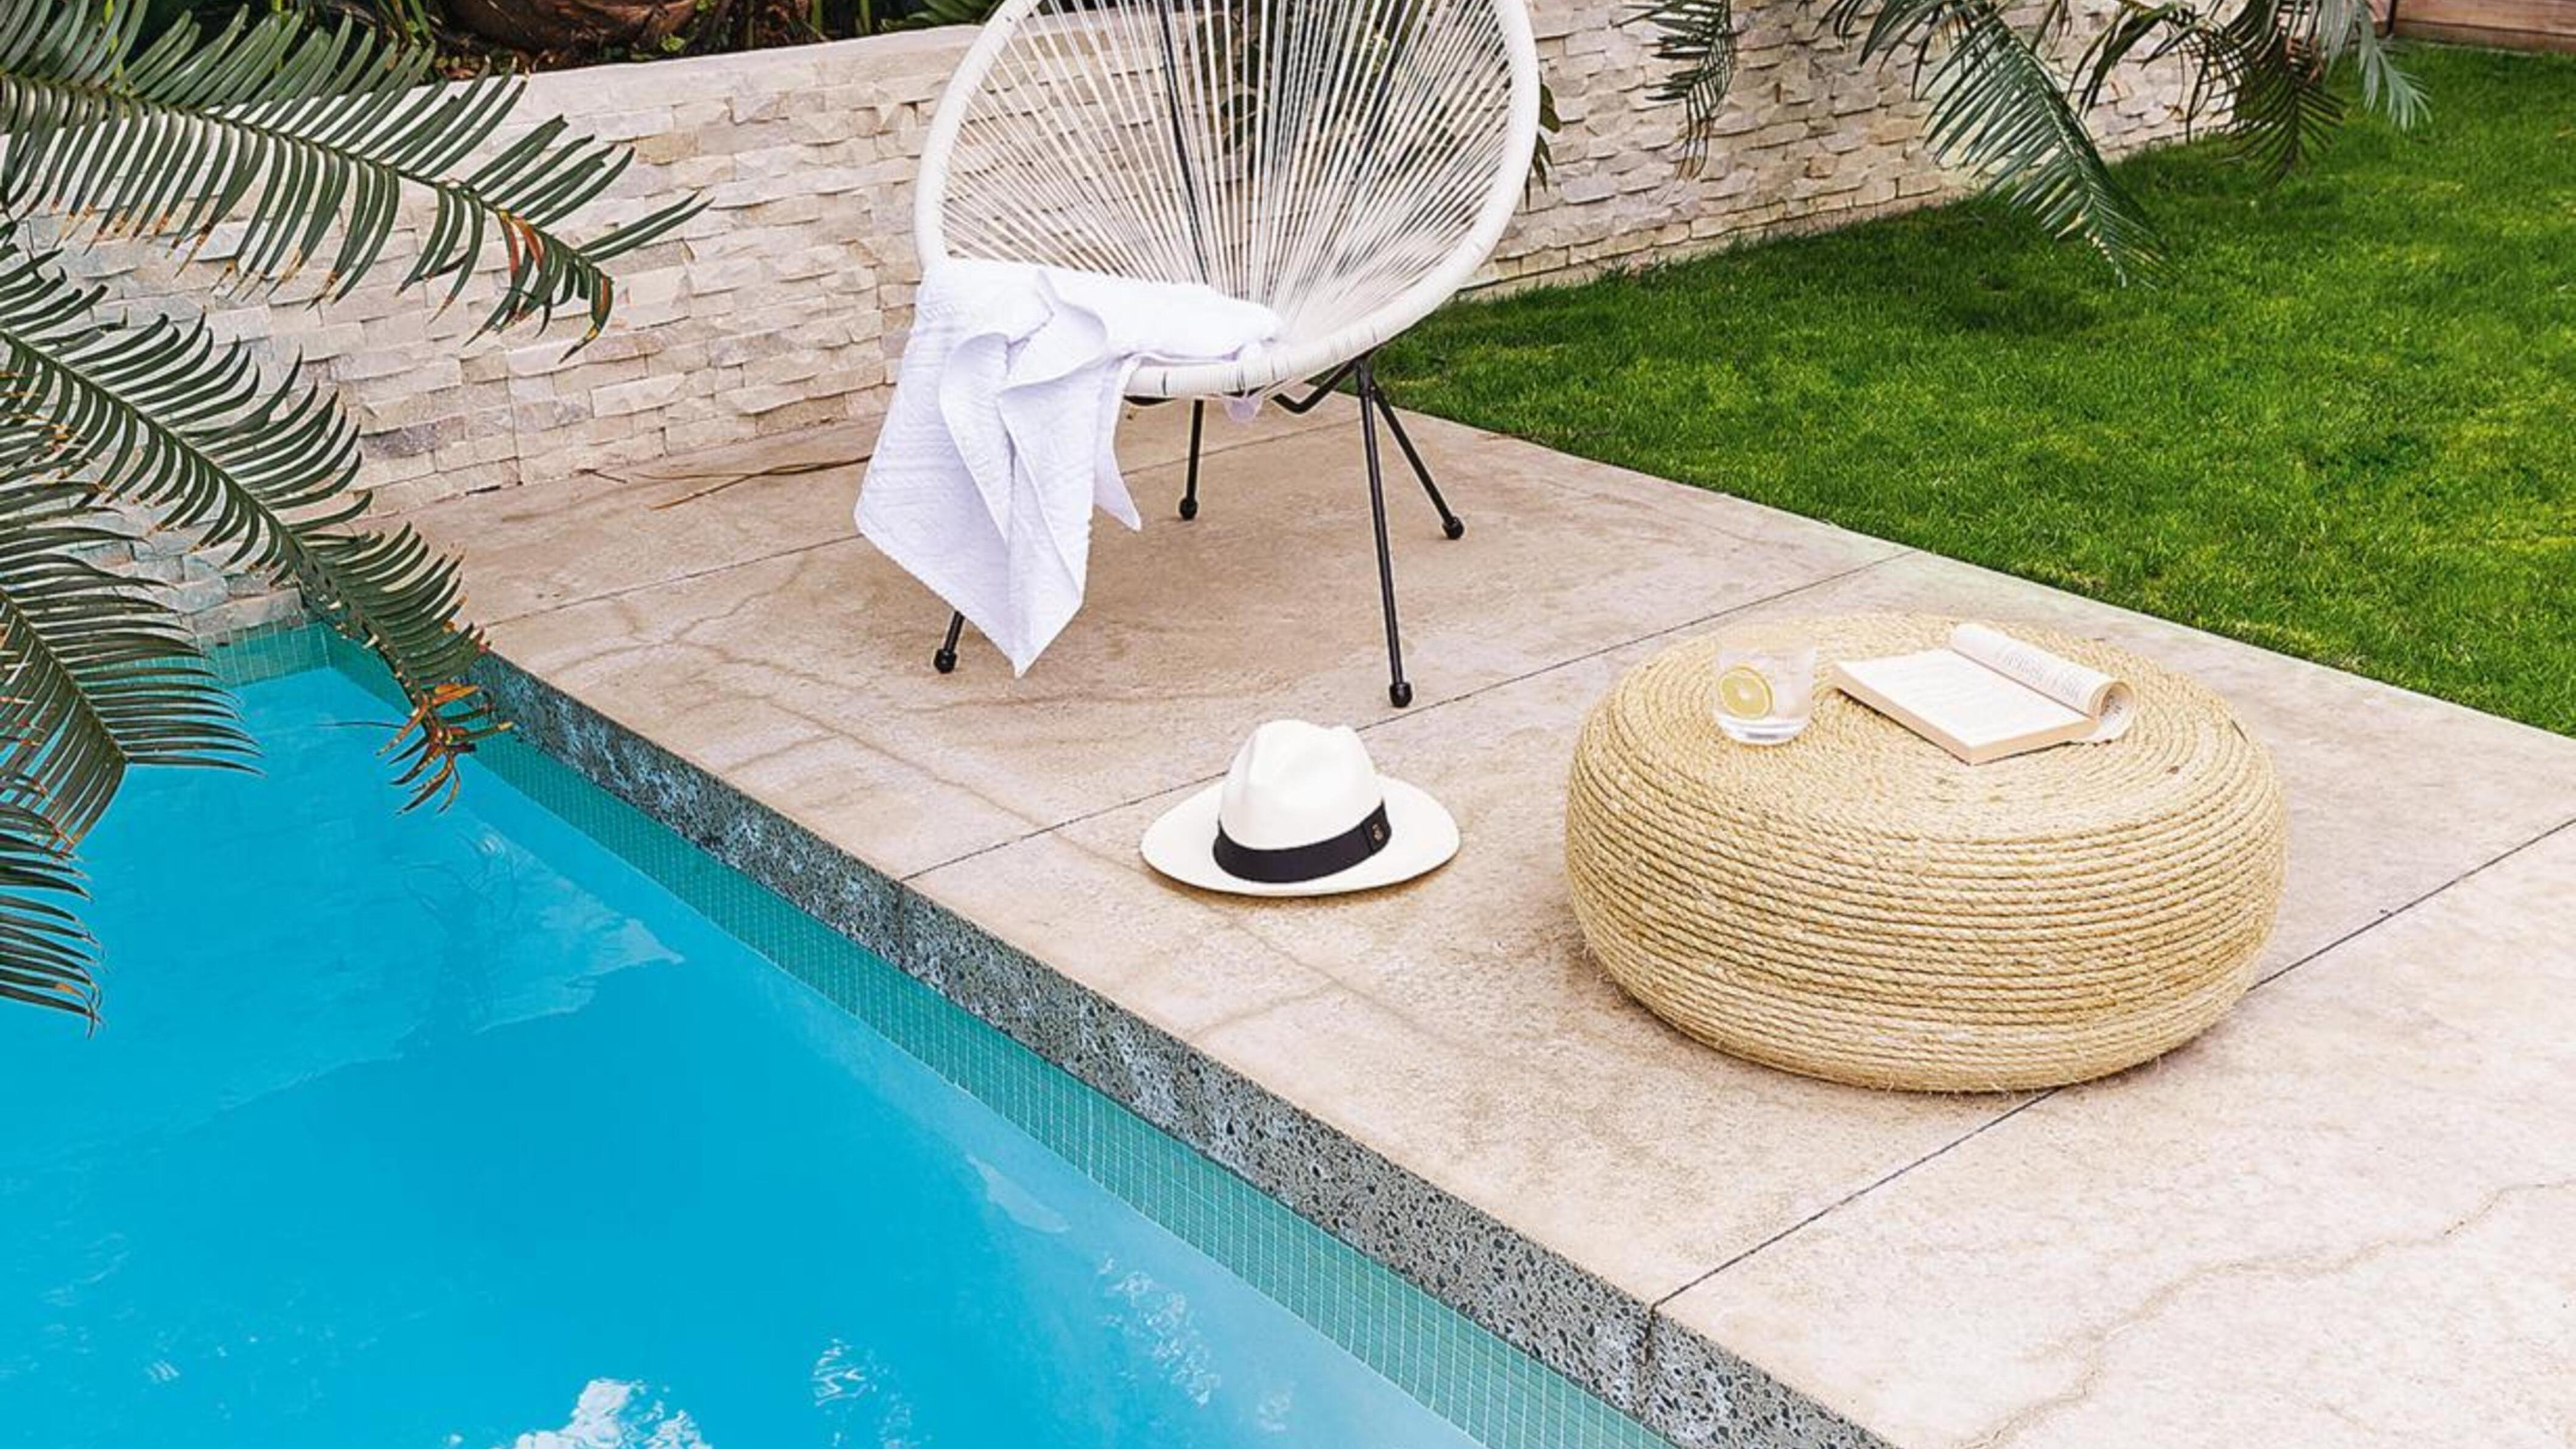 Chair and towel next to pool.